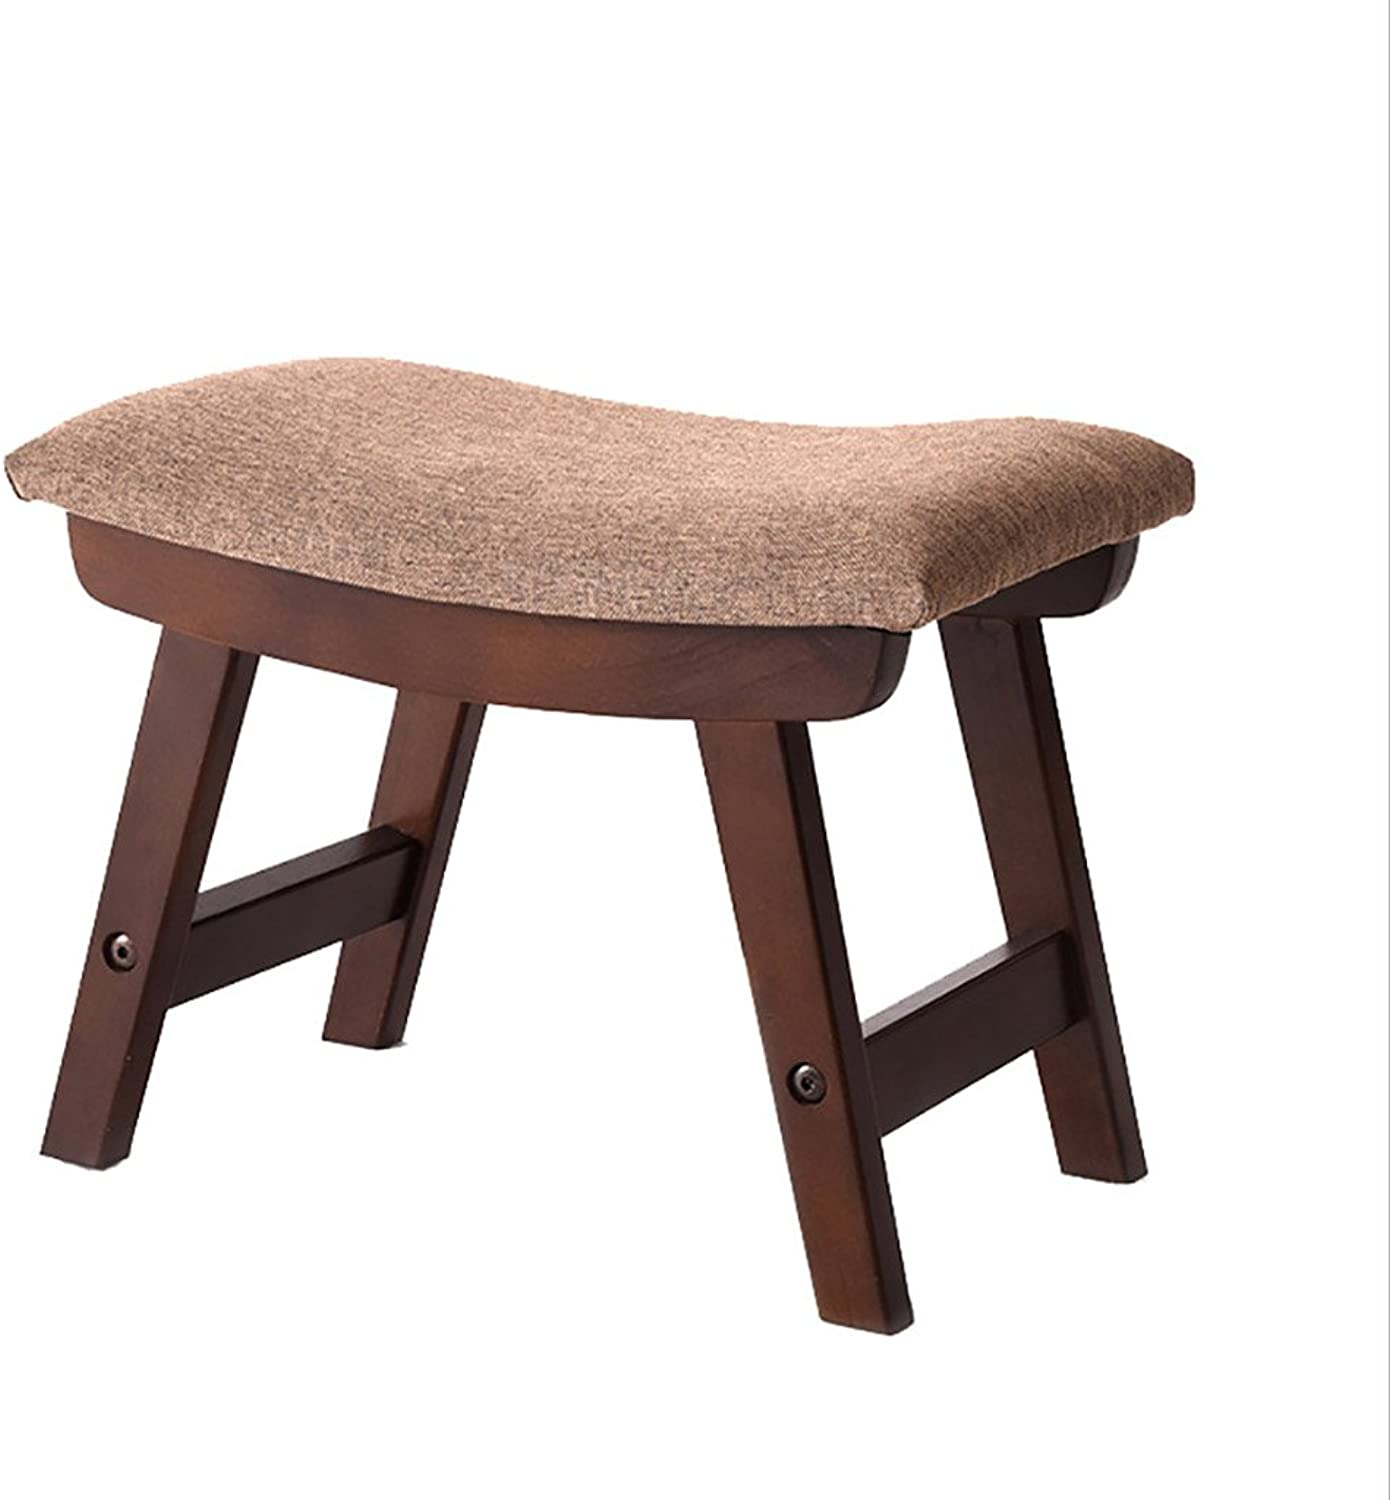 Stool Chair Fabric Stool Fashion Creative shoes Stool Stool Home Bench Living Room Simple Stool Solid Wood Sofa Stool (color   A)